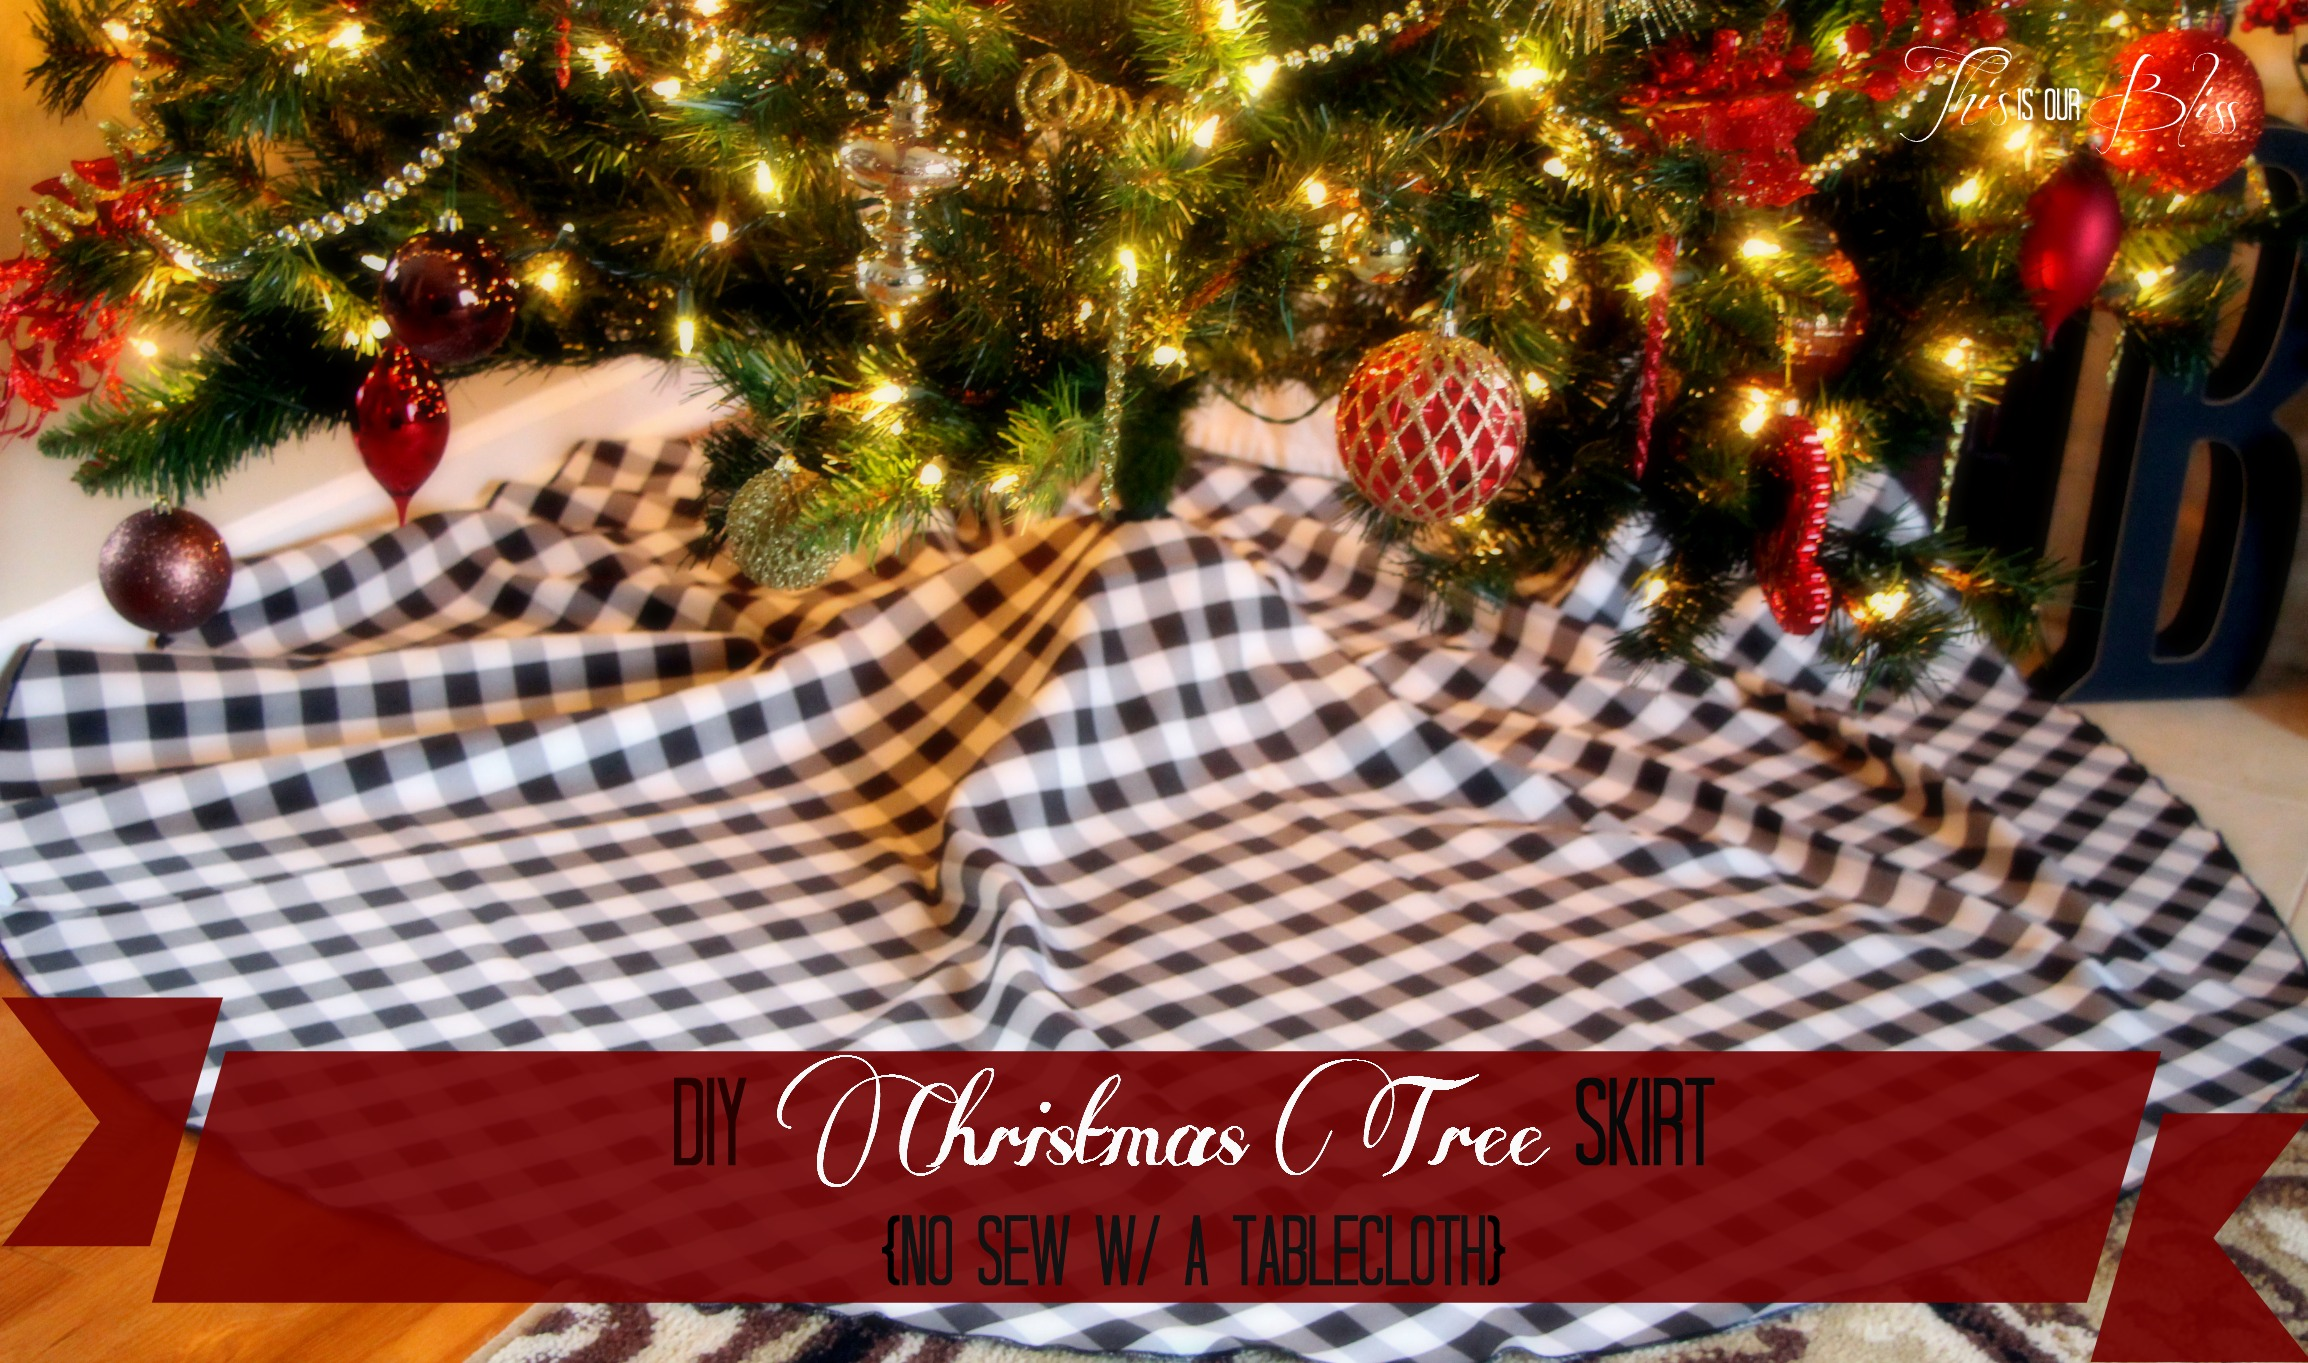 DIY Tree Skirt   Round Tablecloth   No Sew With A Tableloth